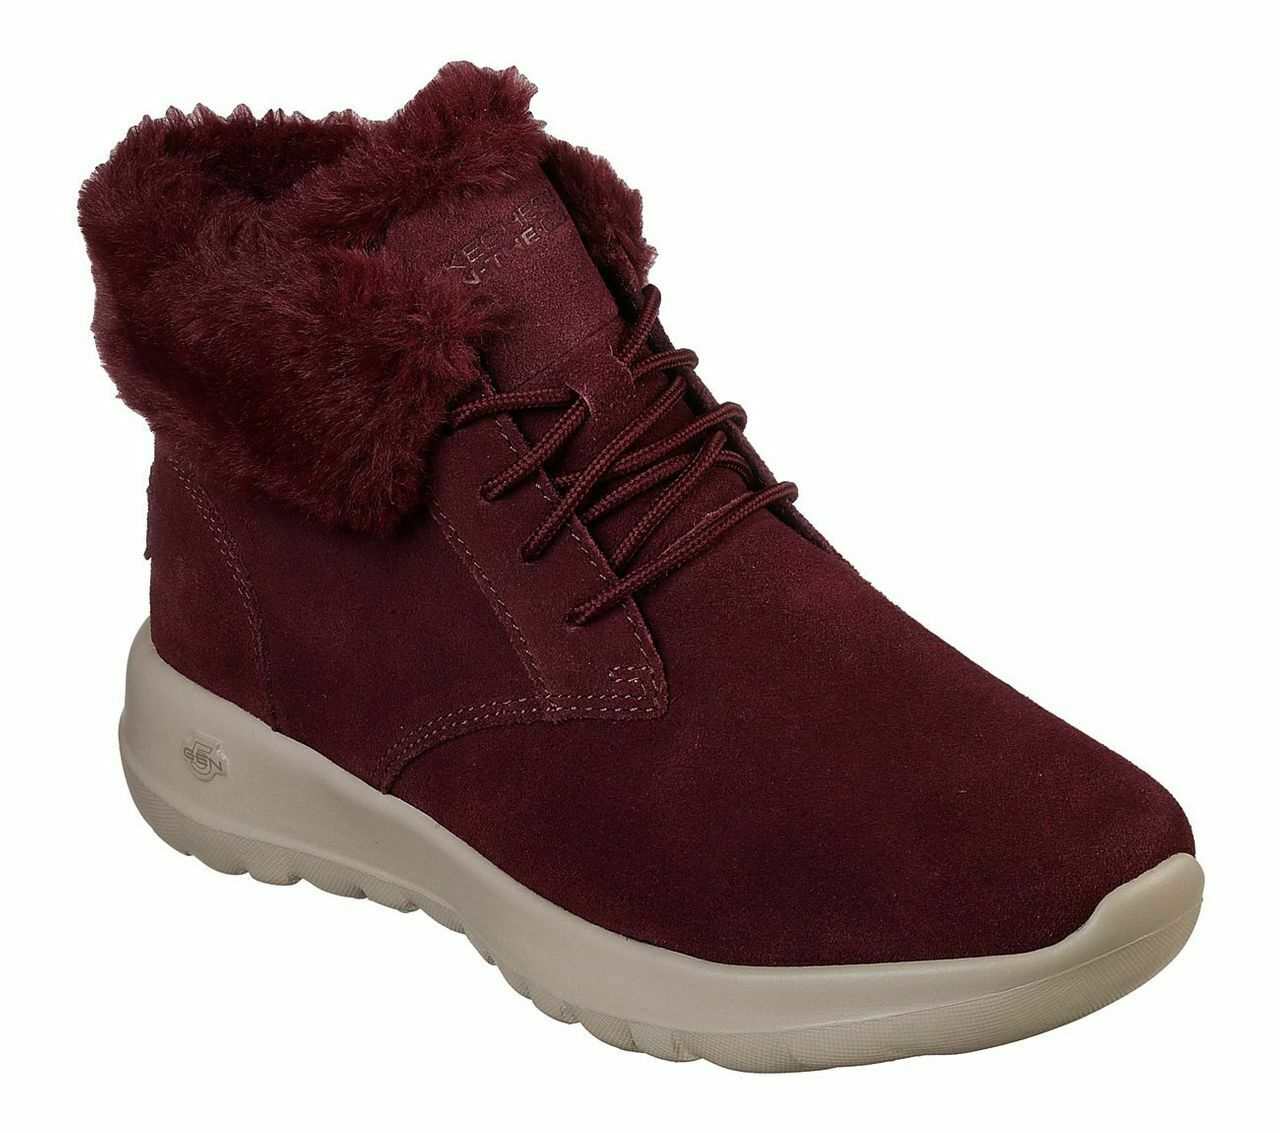 Skechers O-T-G damen Stiefel ON-THE-GO JOY LUSH WinterStiefel gefüttert Rot